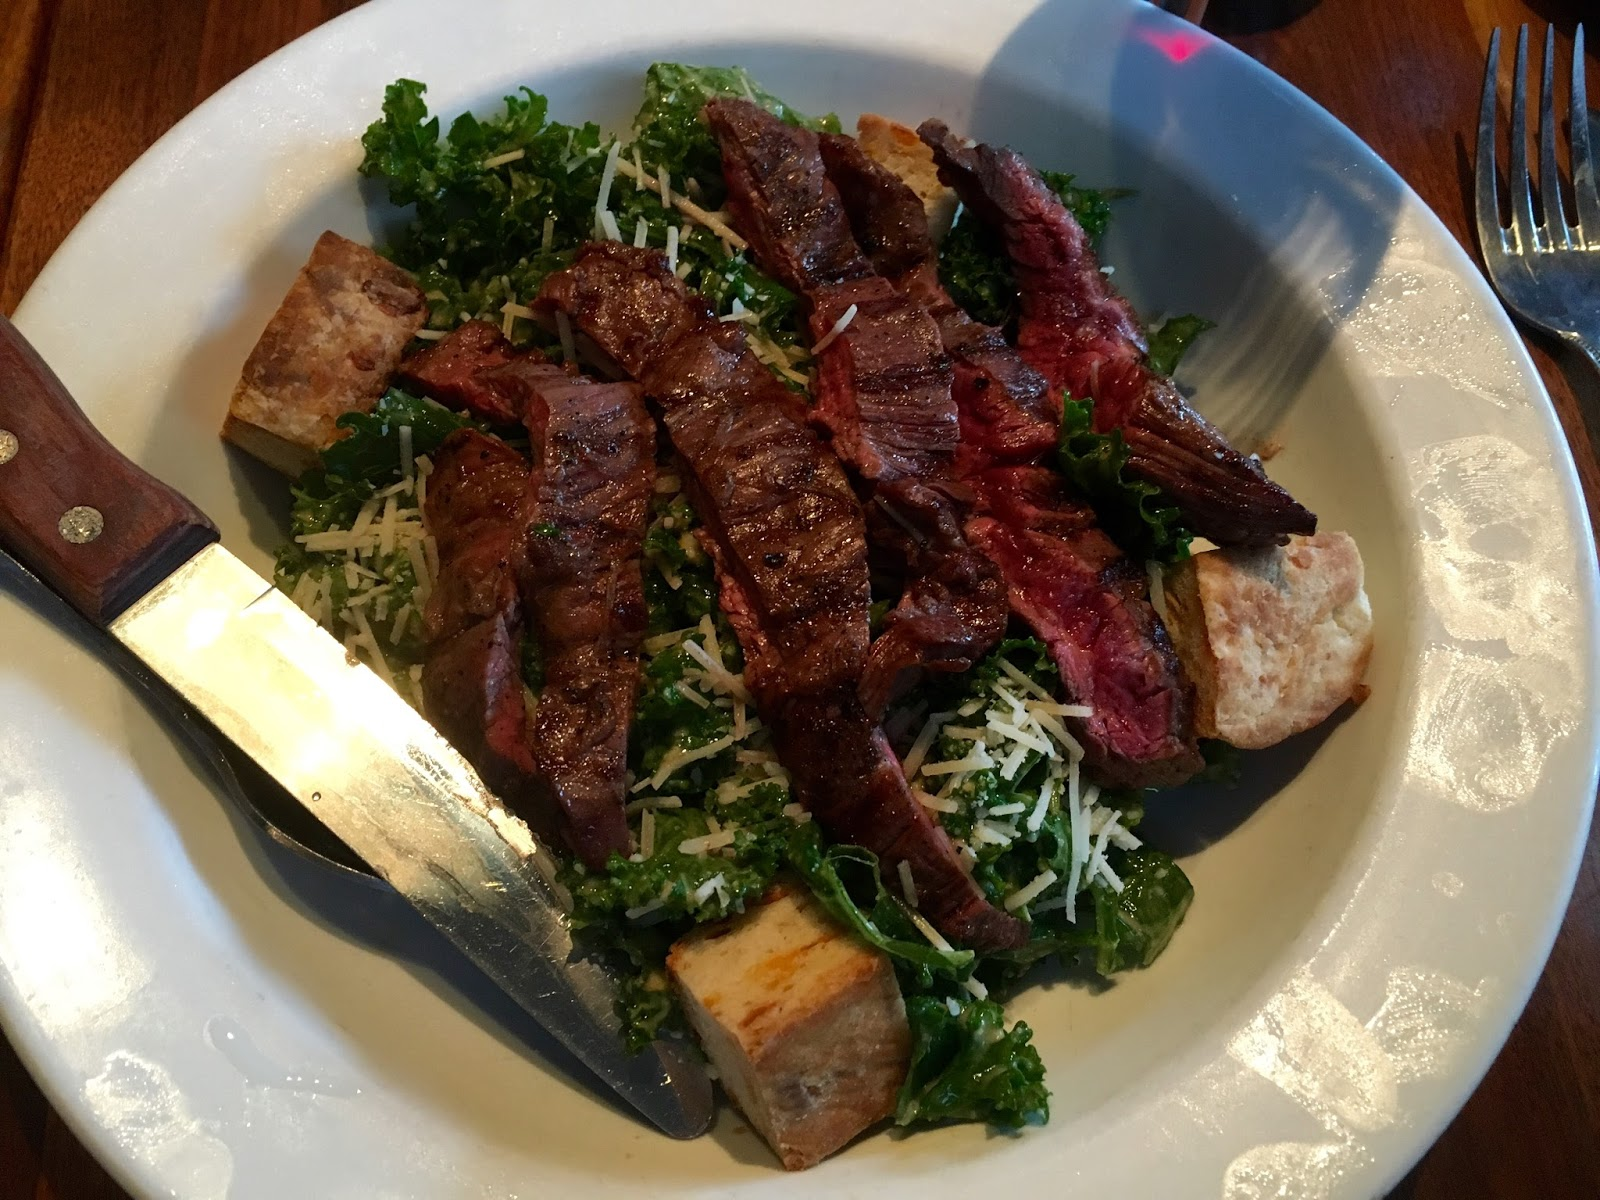 Kale Salad with steak